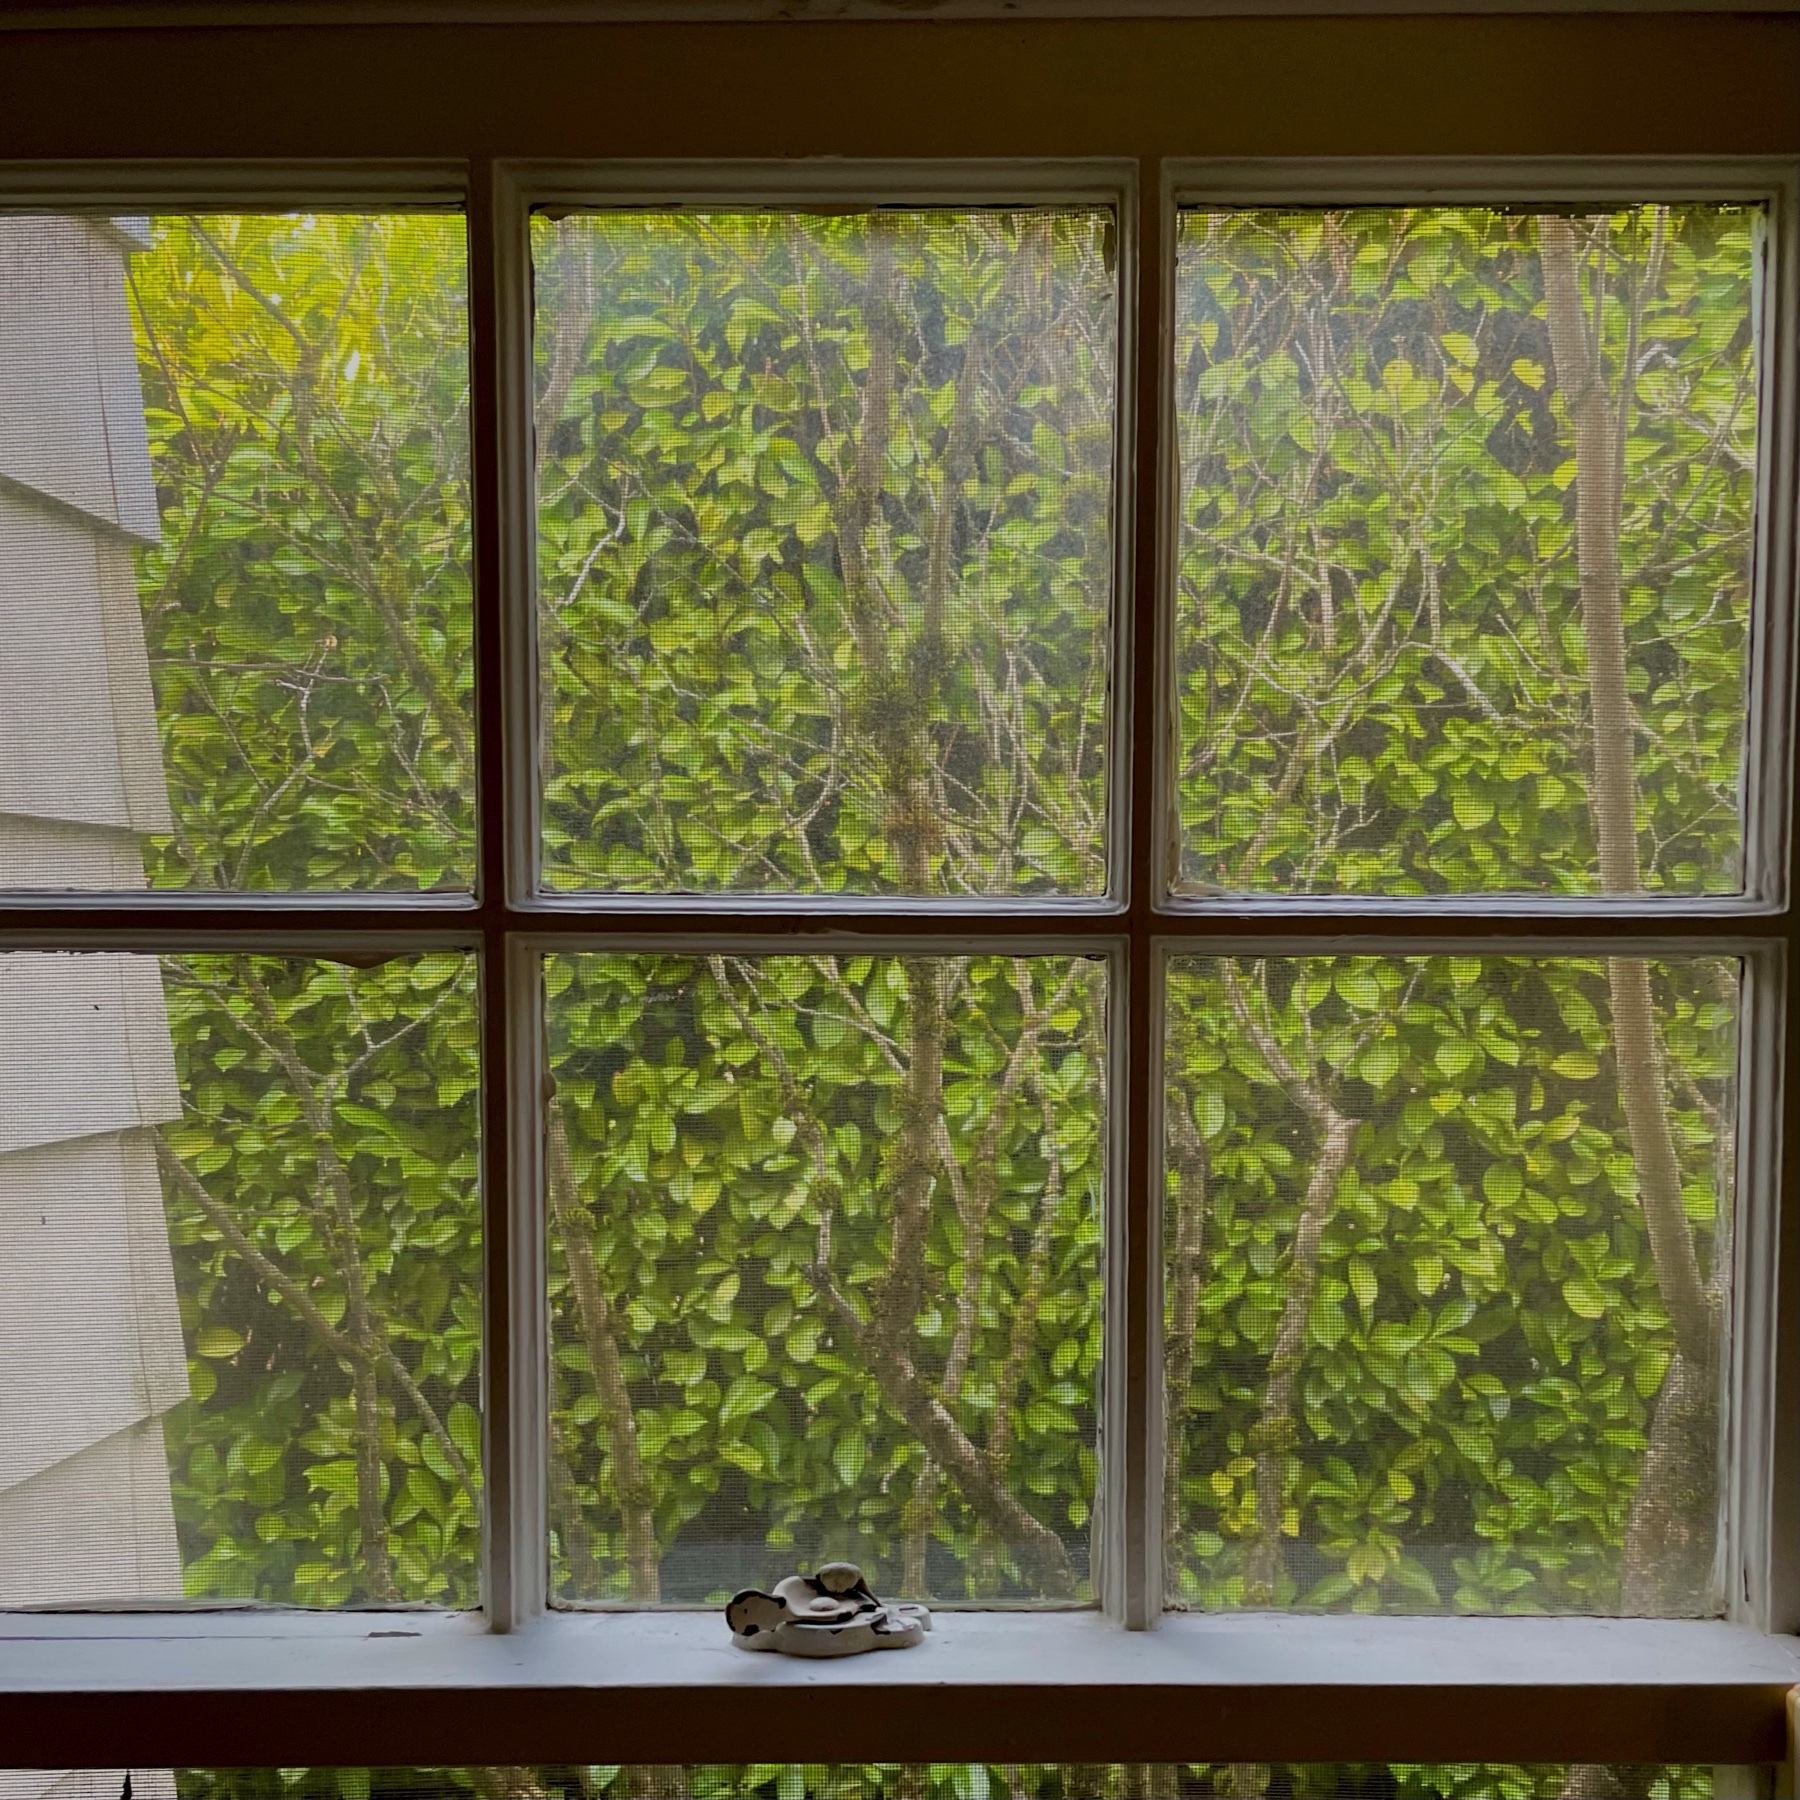 View of hedge fills the window